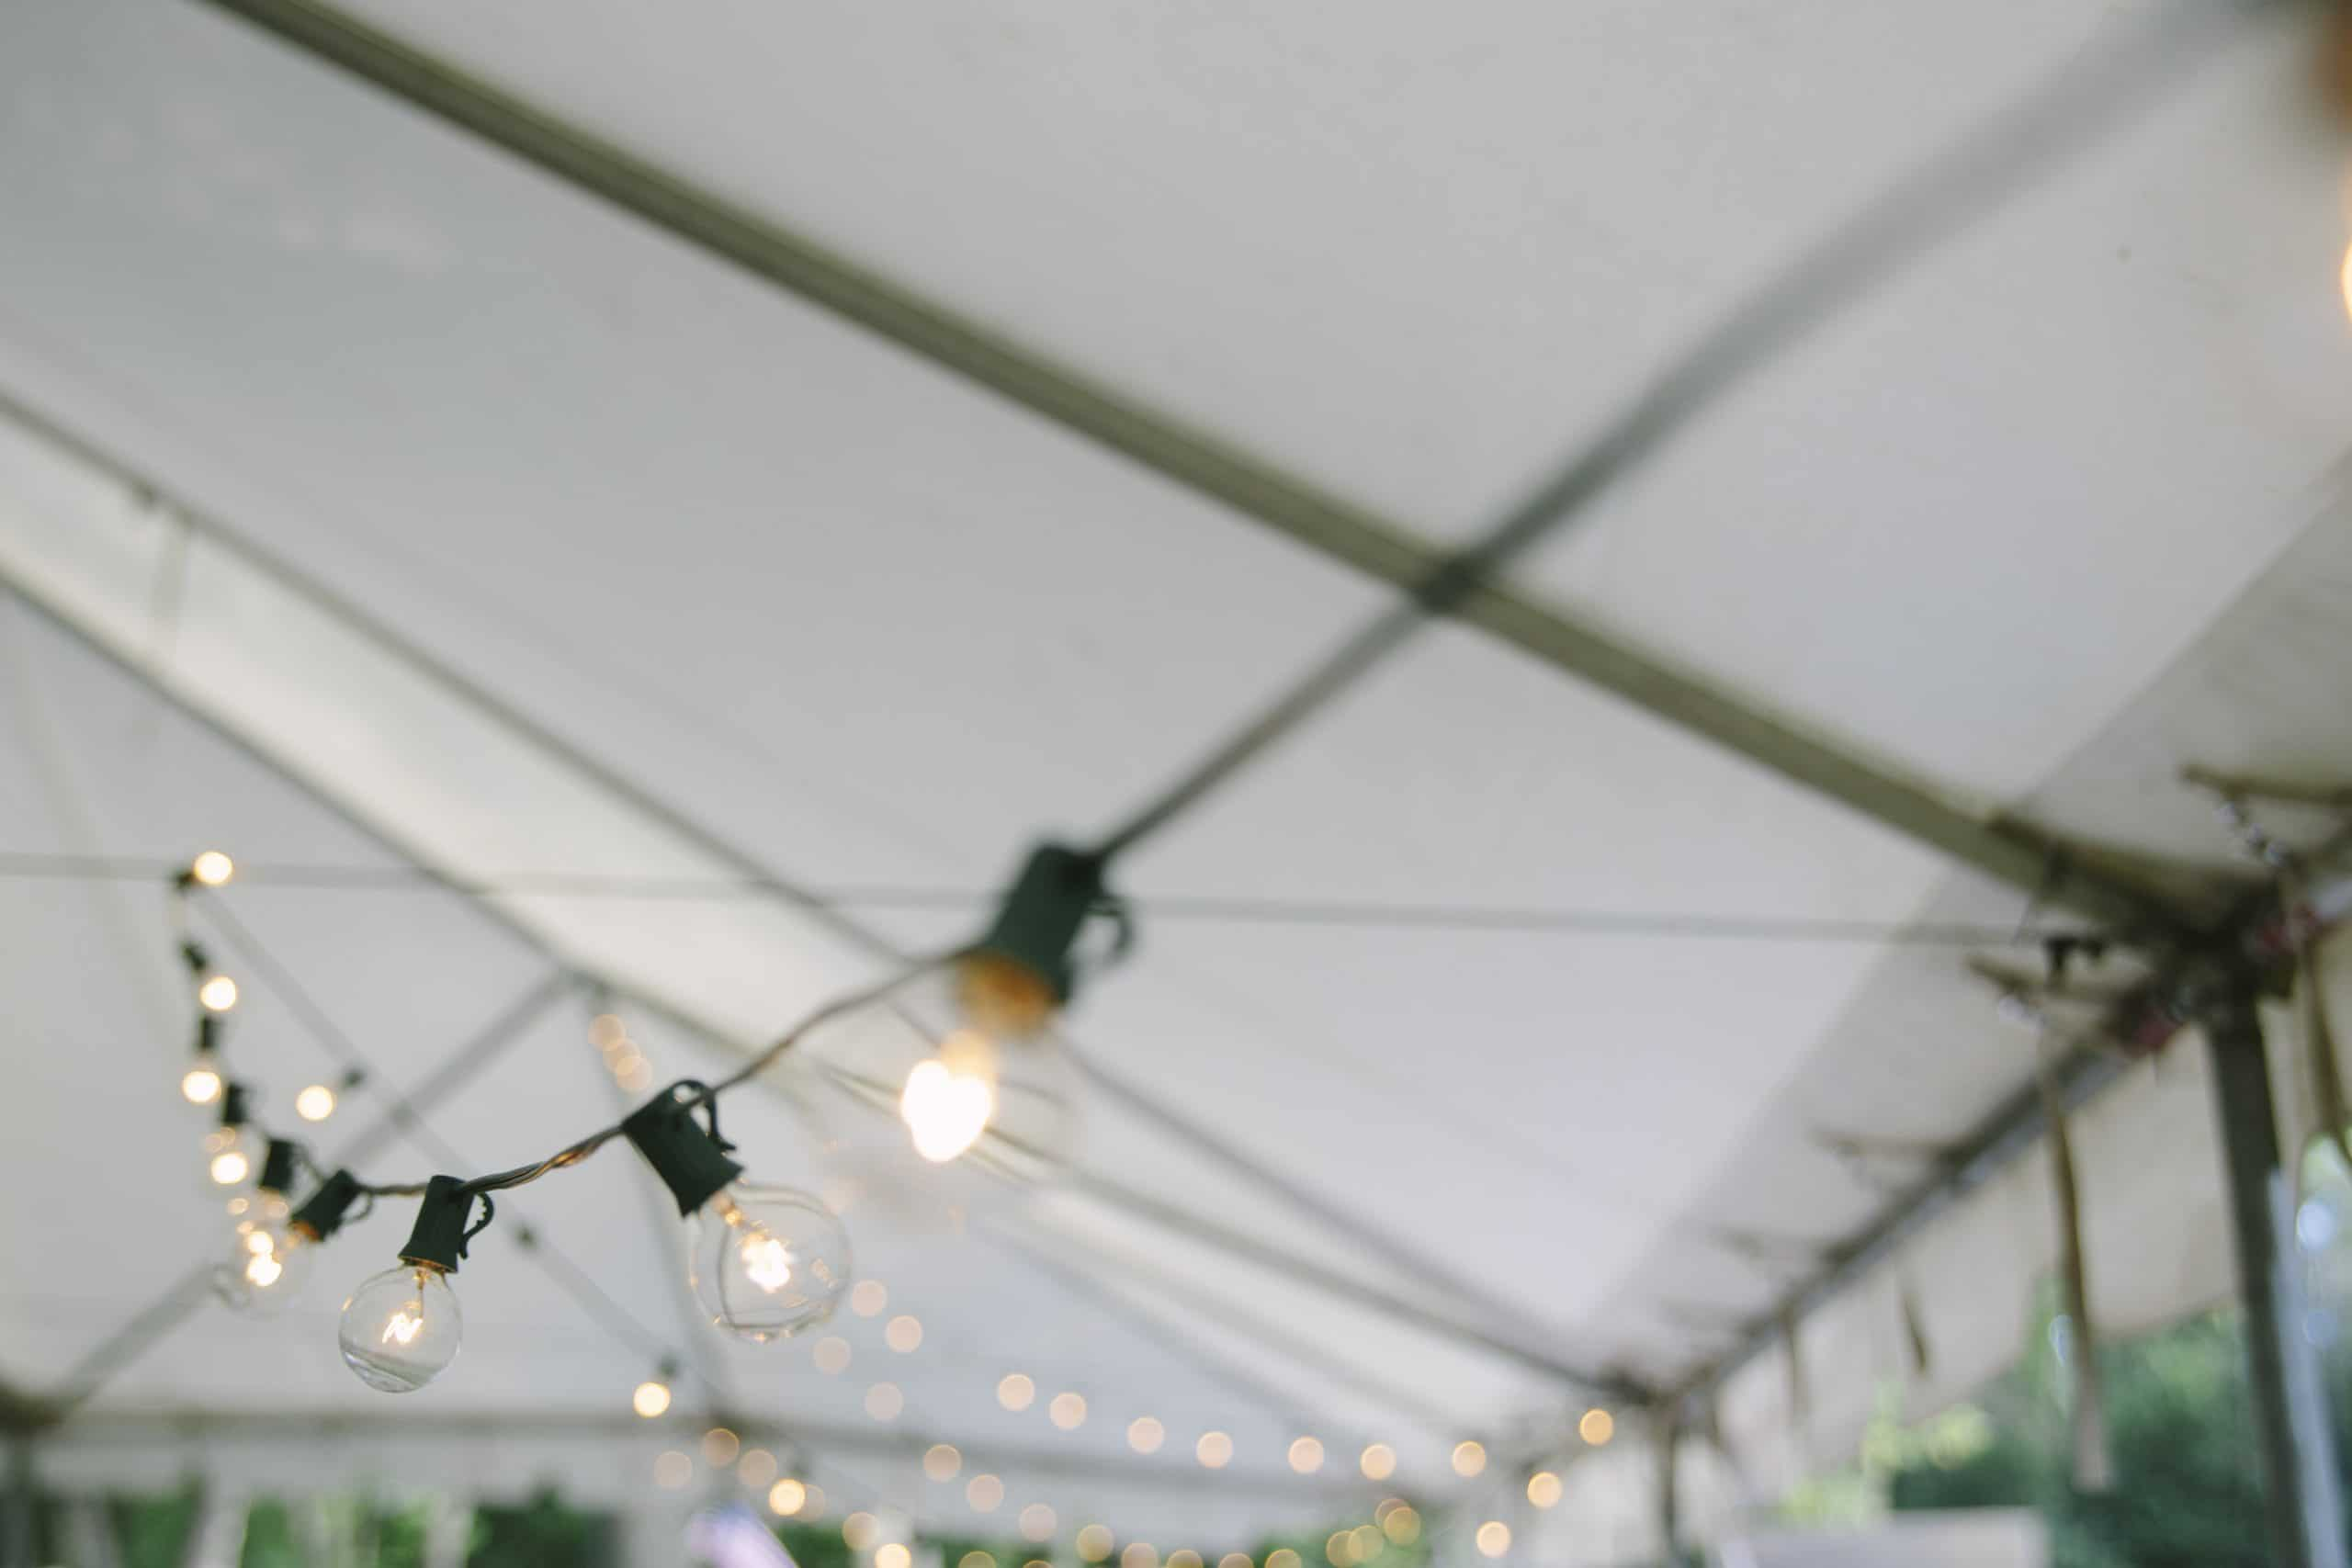 Lighting inside a tent for a pop-up event